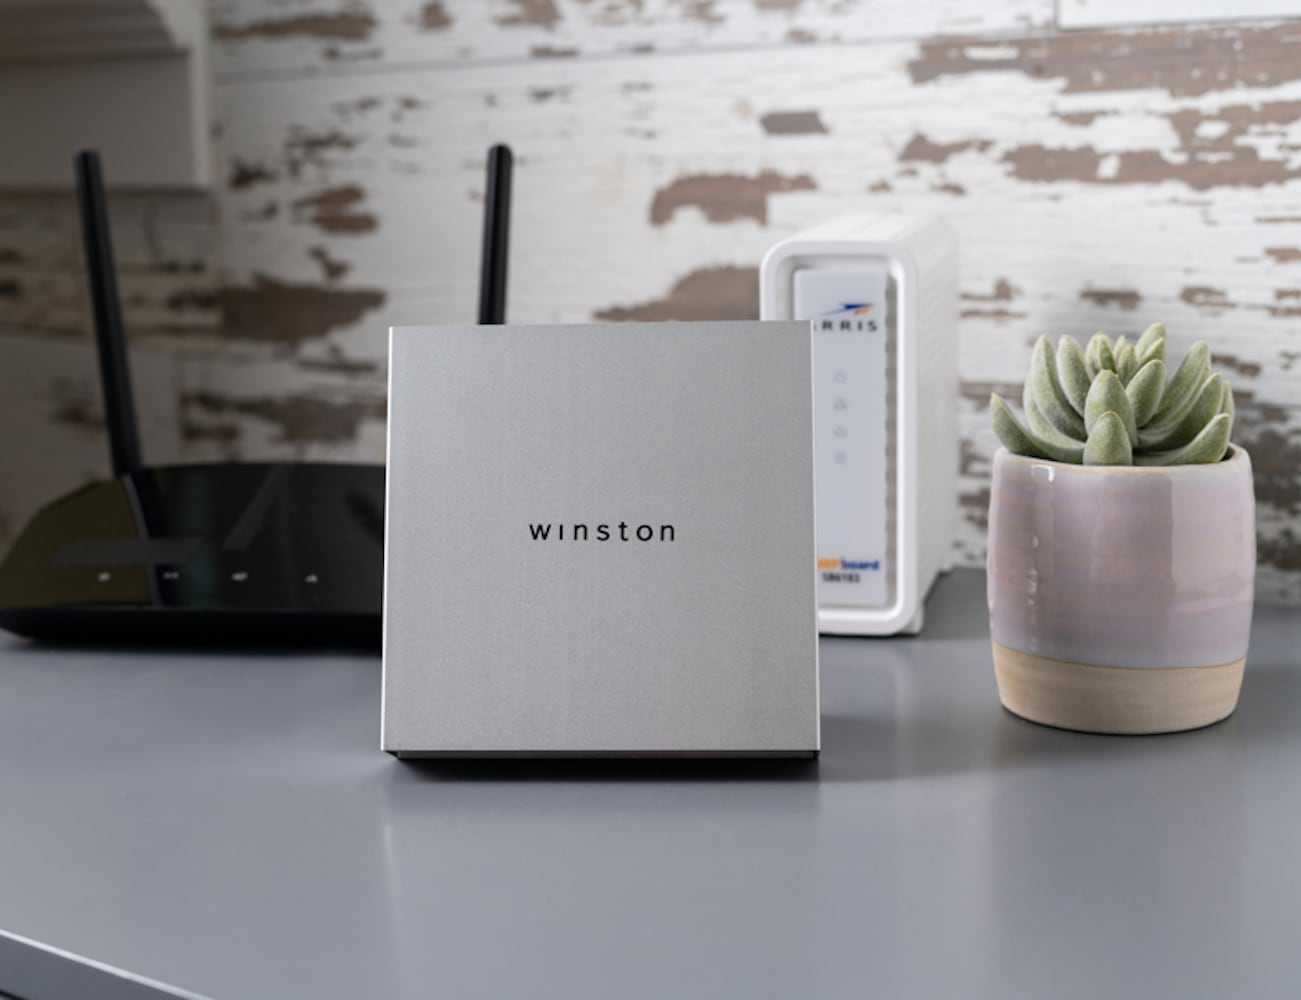 Winston Online Privacy Device protects your information from prying eyes